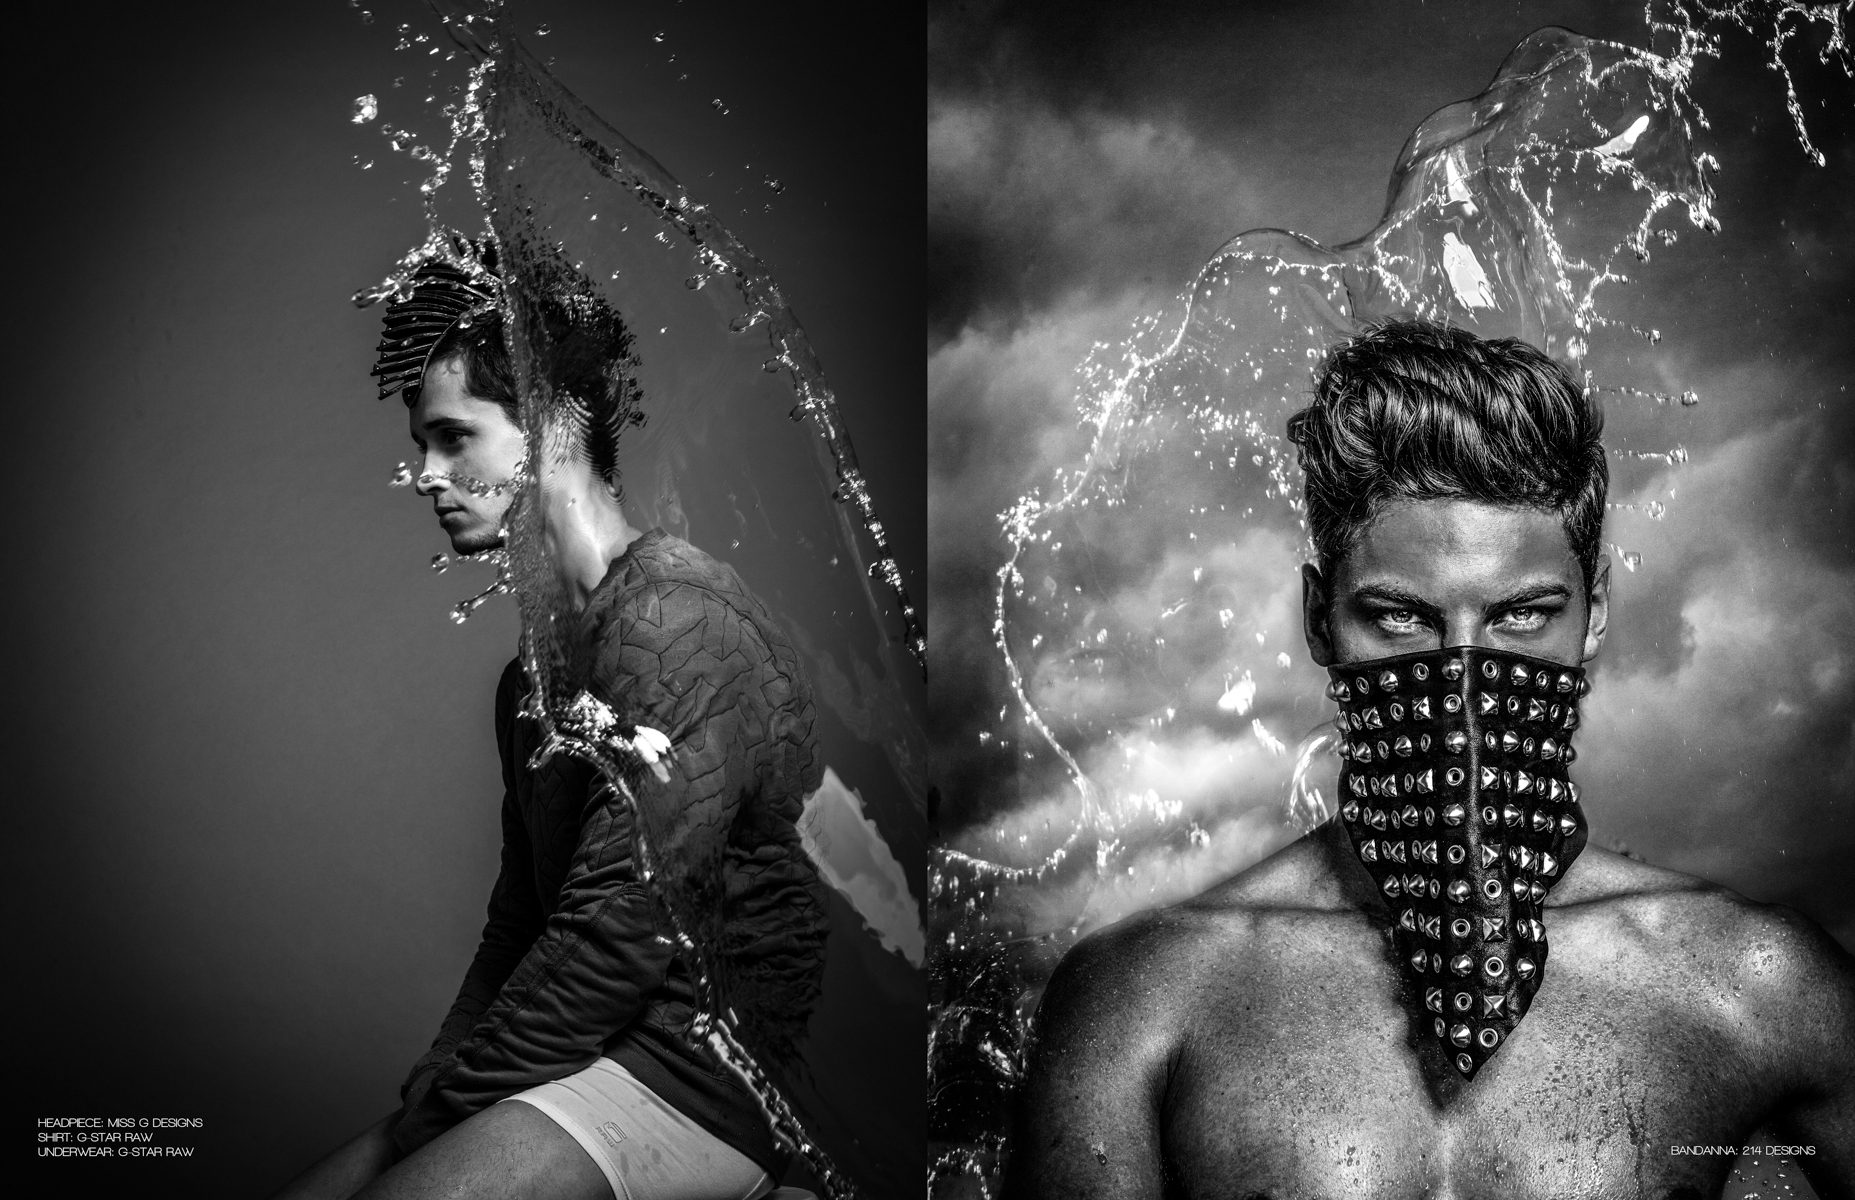 WET Photographed by Bradford Rogne